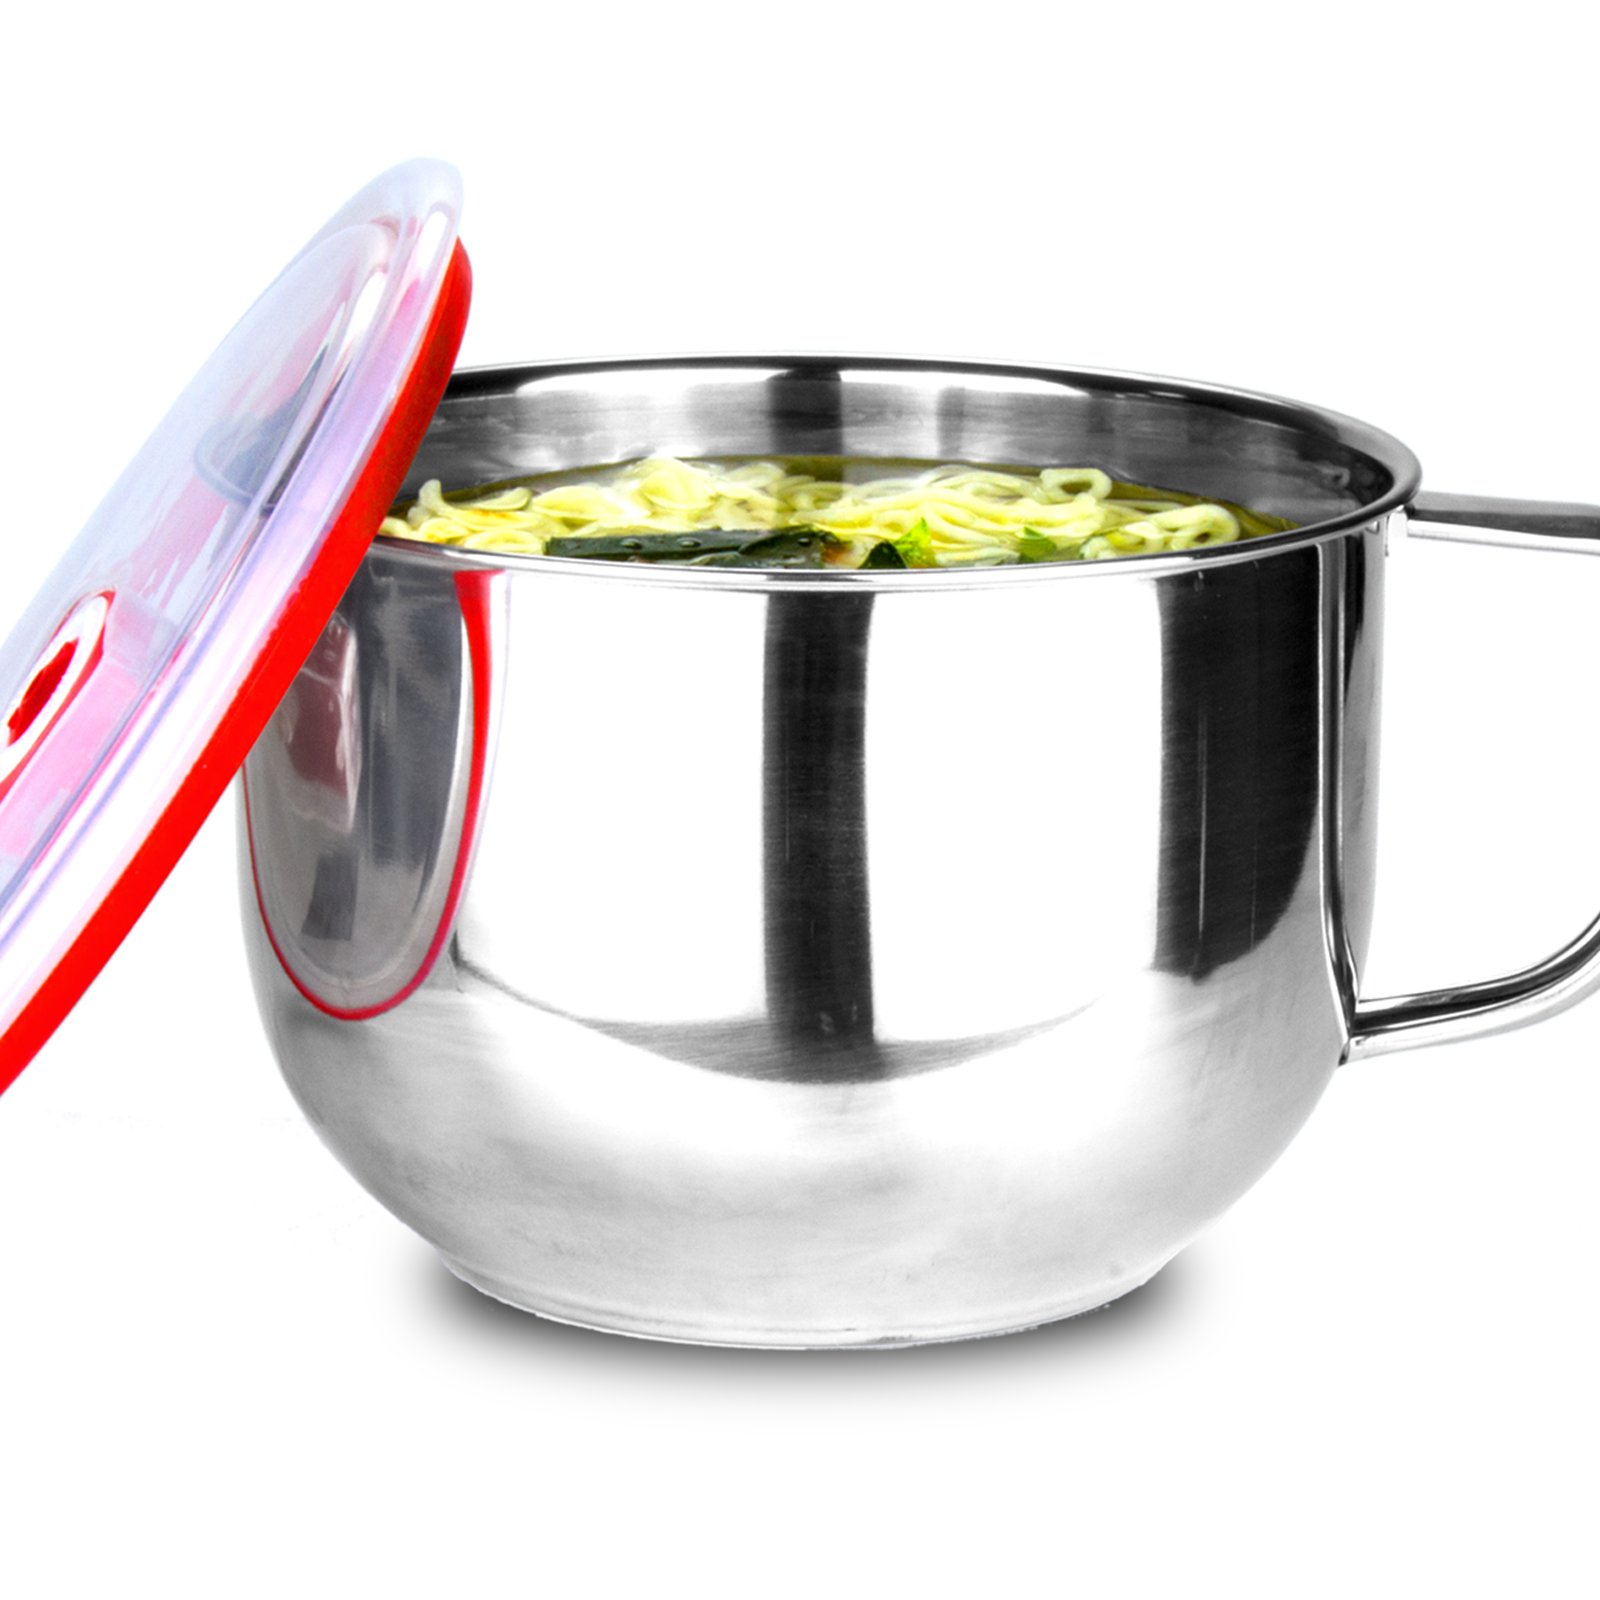 SimLife Stainless Steel Ramen Noodle Soup Pasta Bowl and Induction Cooker directly with Handle&Lid